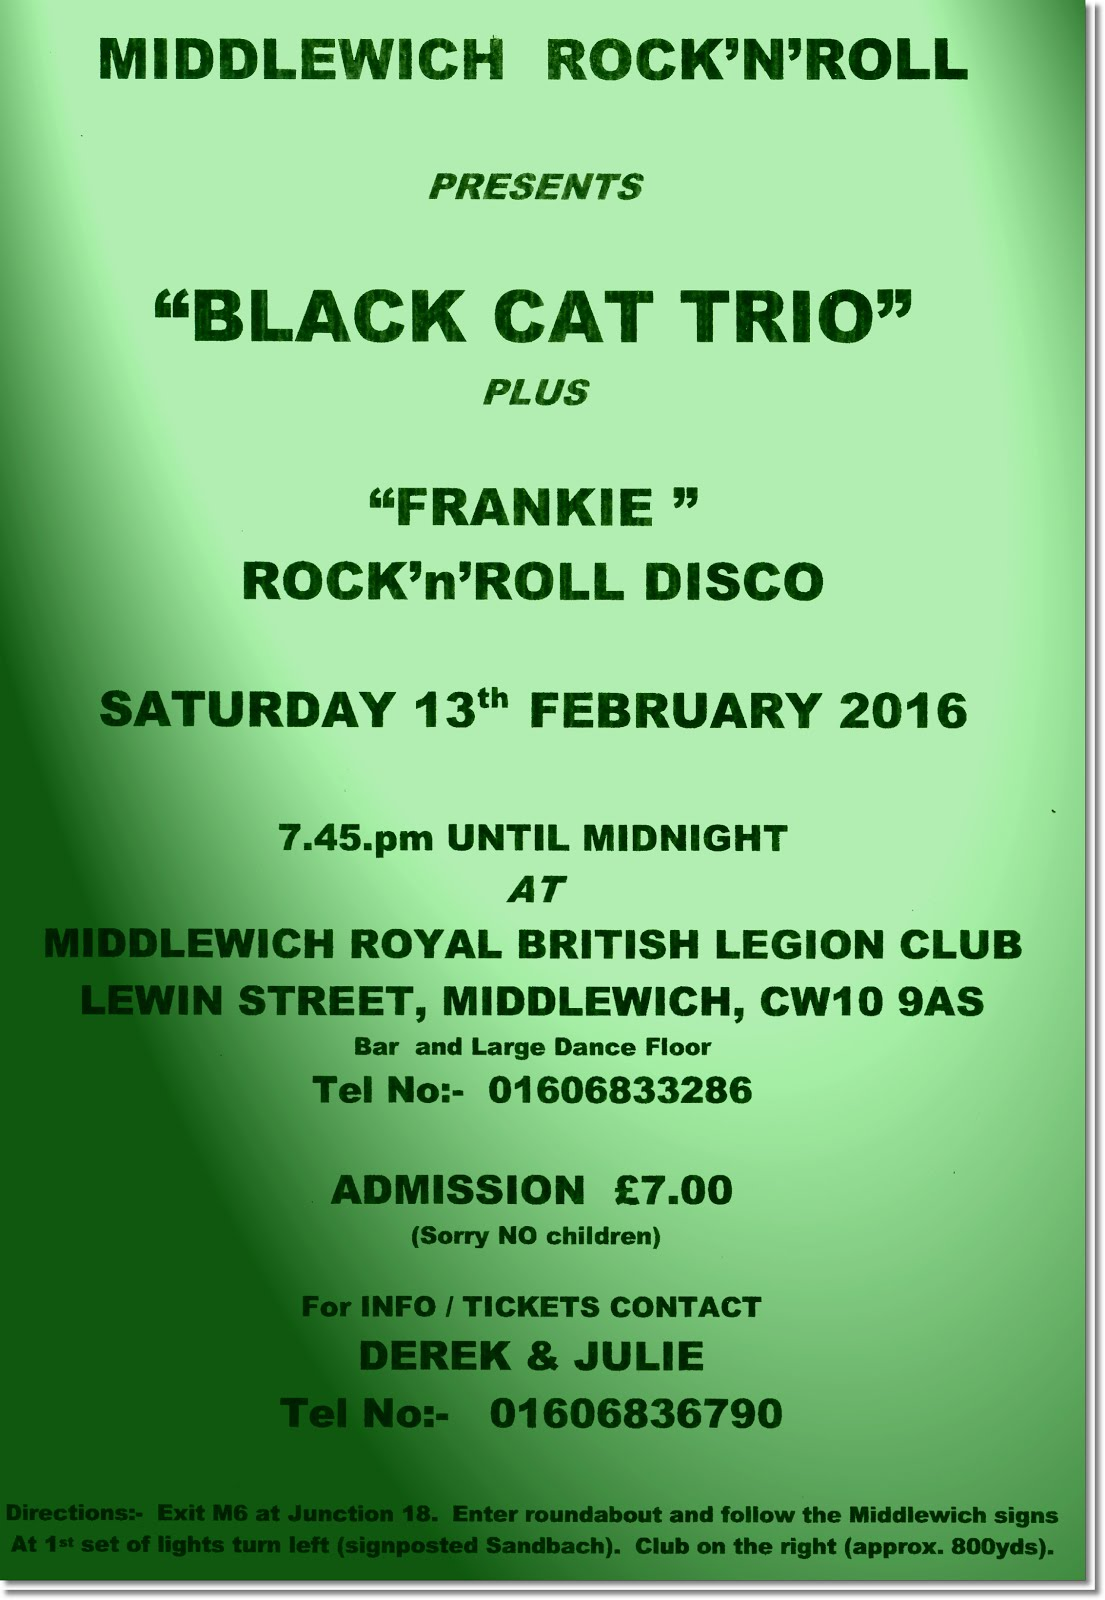 MUSIC IN MIDDLEWICH - THE BLACK CAT TRIO